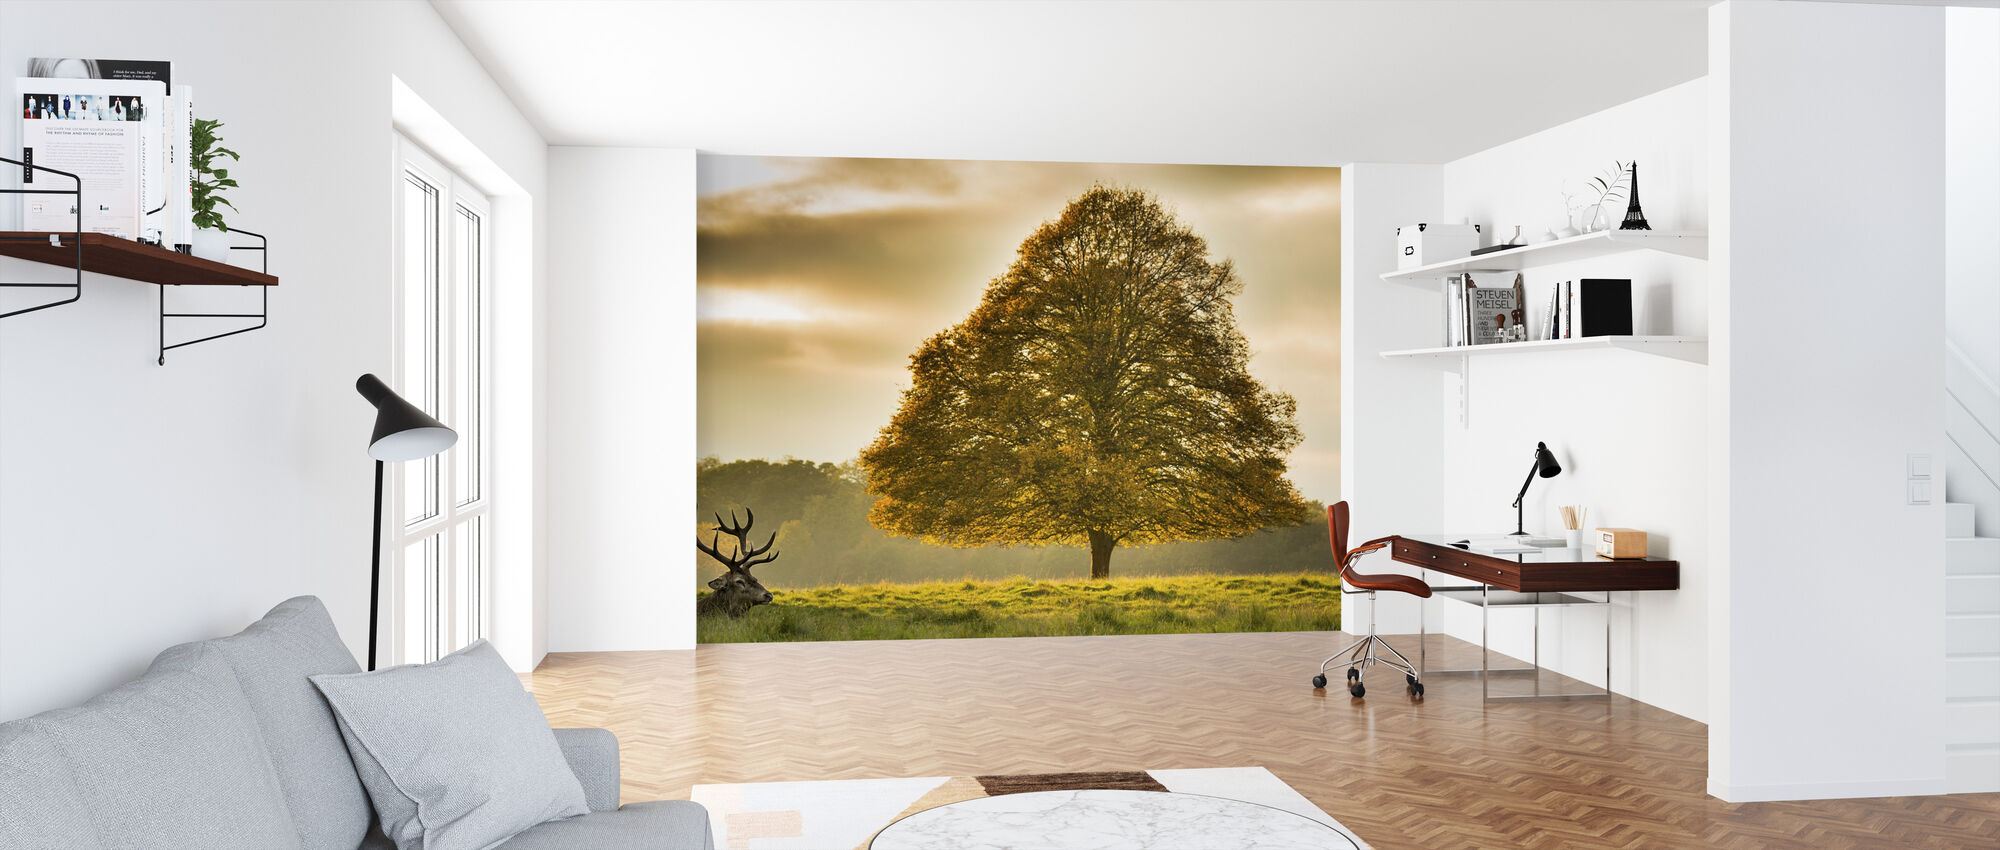 Deer and the Tree - Wallpaper - Office